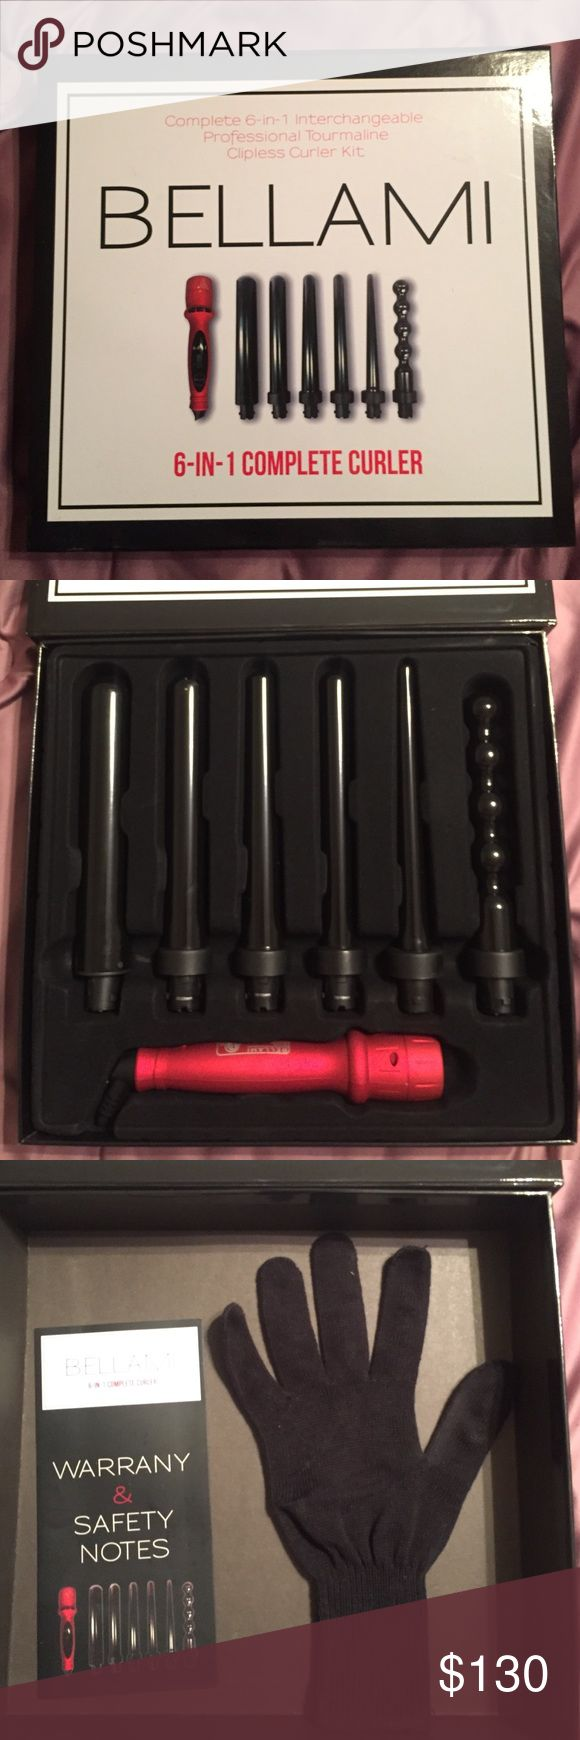 Bellami 6 in 1 curling iron Only used once! And didn't even use all the wands! Got as a gift and love it but I have way too many hair tools already! This is an amazing set that allows you to do a ton of different styles! From beachy waves to corkscrew curls. Sells for $300 online but I want to make room in my place so I'm selling for over half off! Comes with heat styling glove to protect your digits! Bellami Accessories Hair Accessories